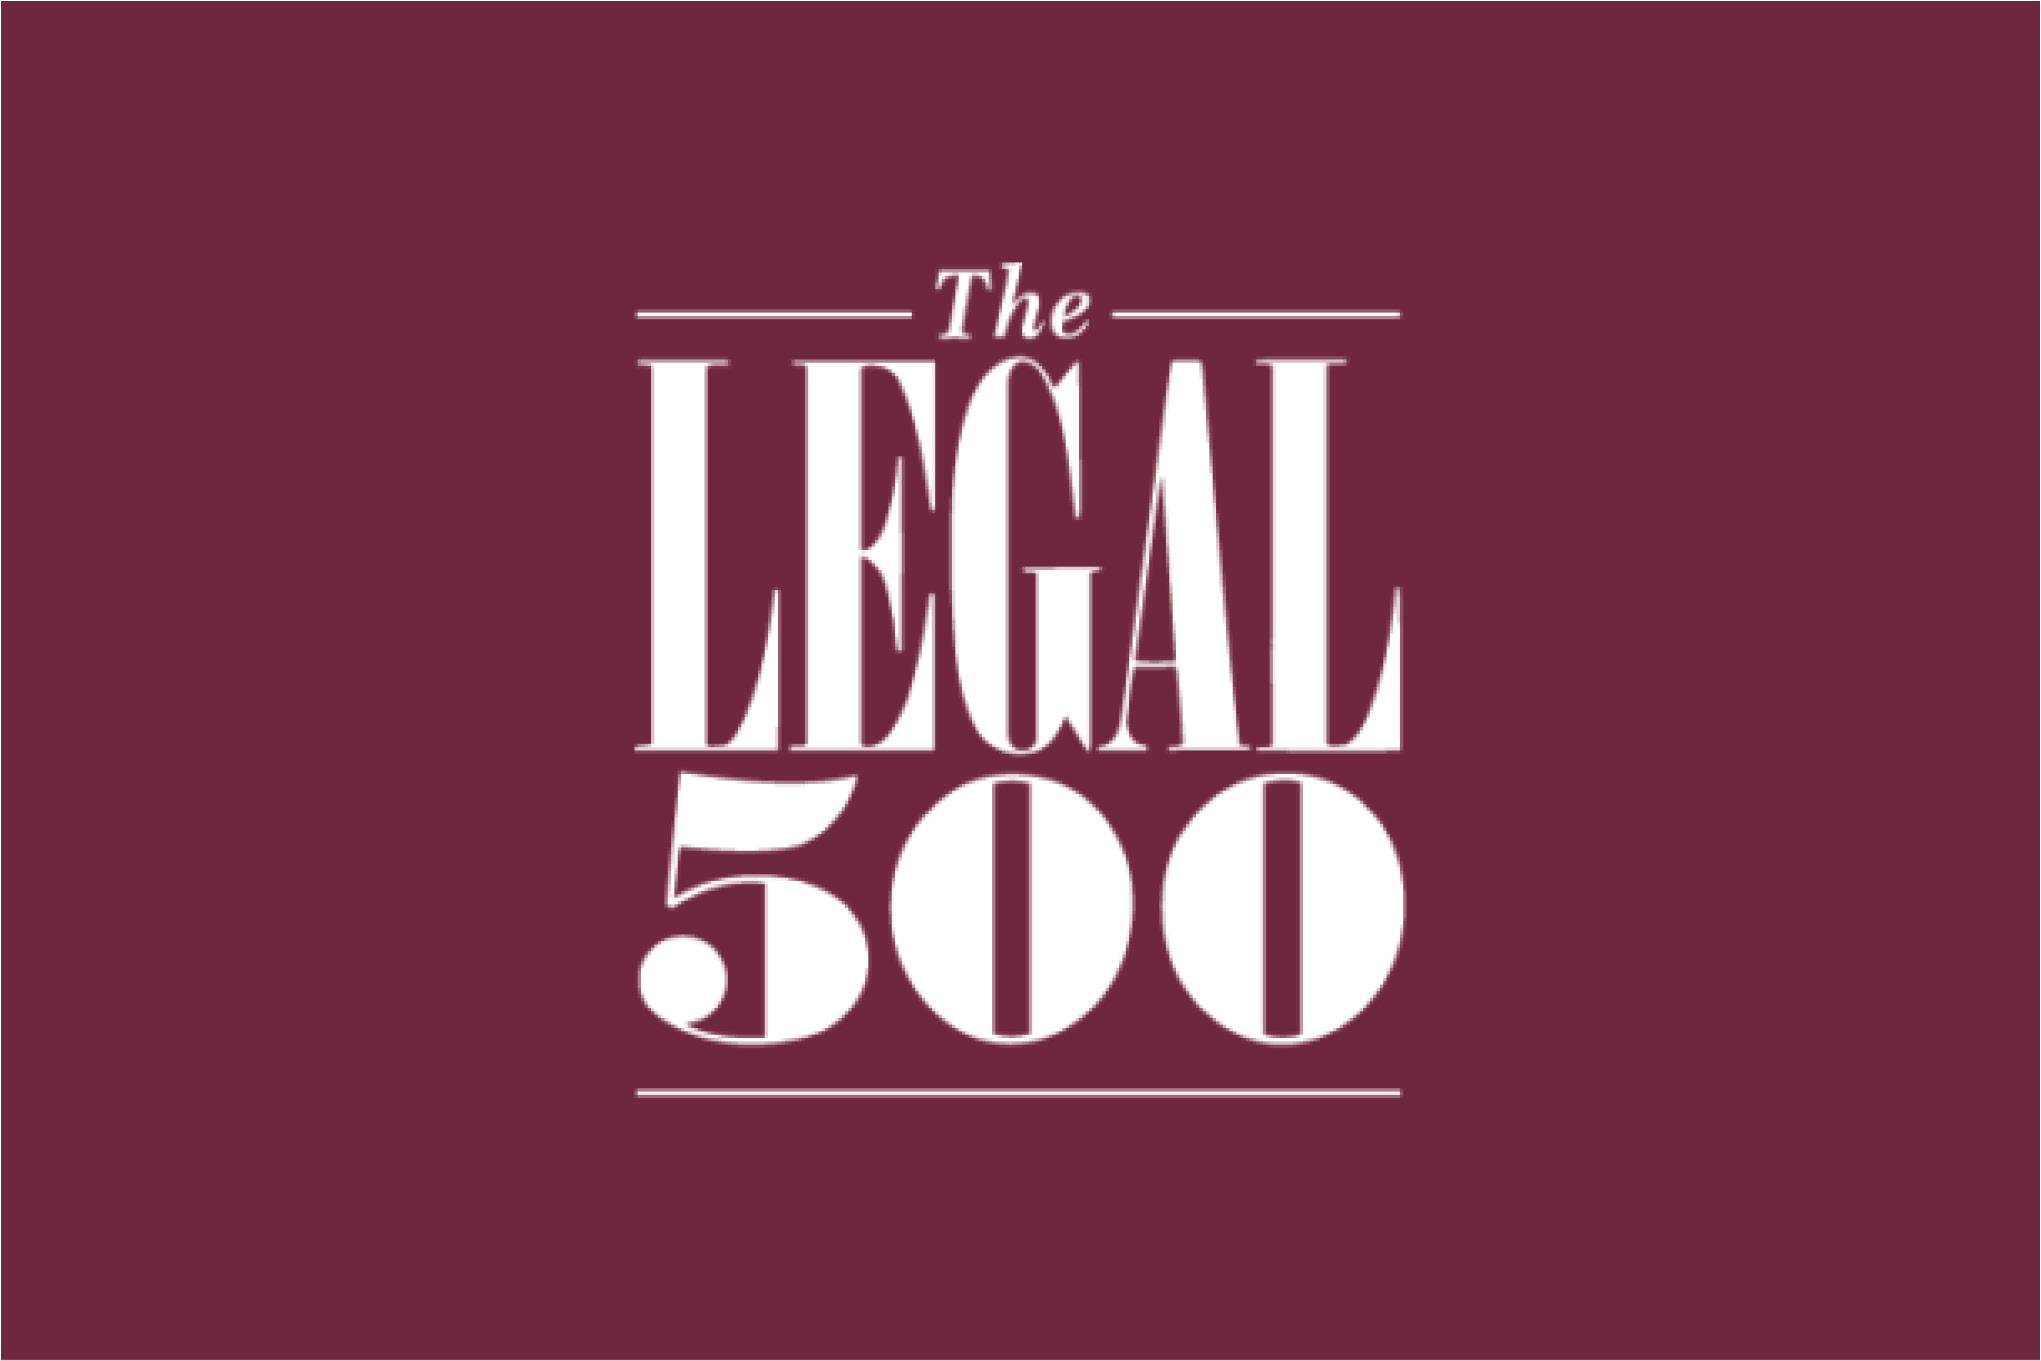 Four lawyers in Legal 500 Hall of Fame as Anderson Strathern reports record individuals ranked